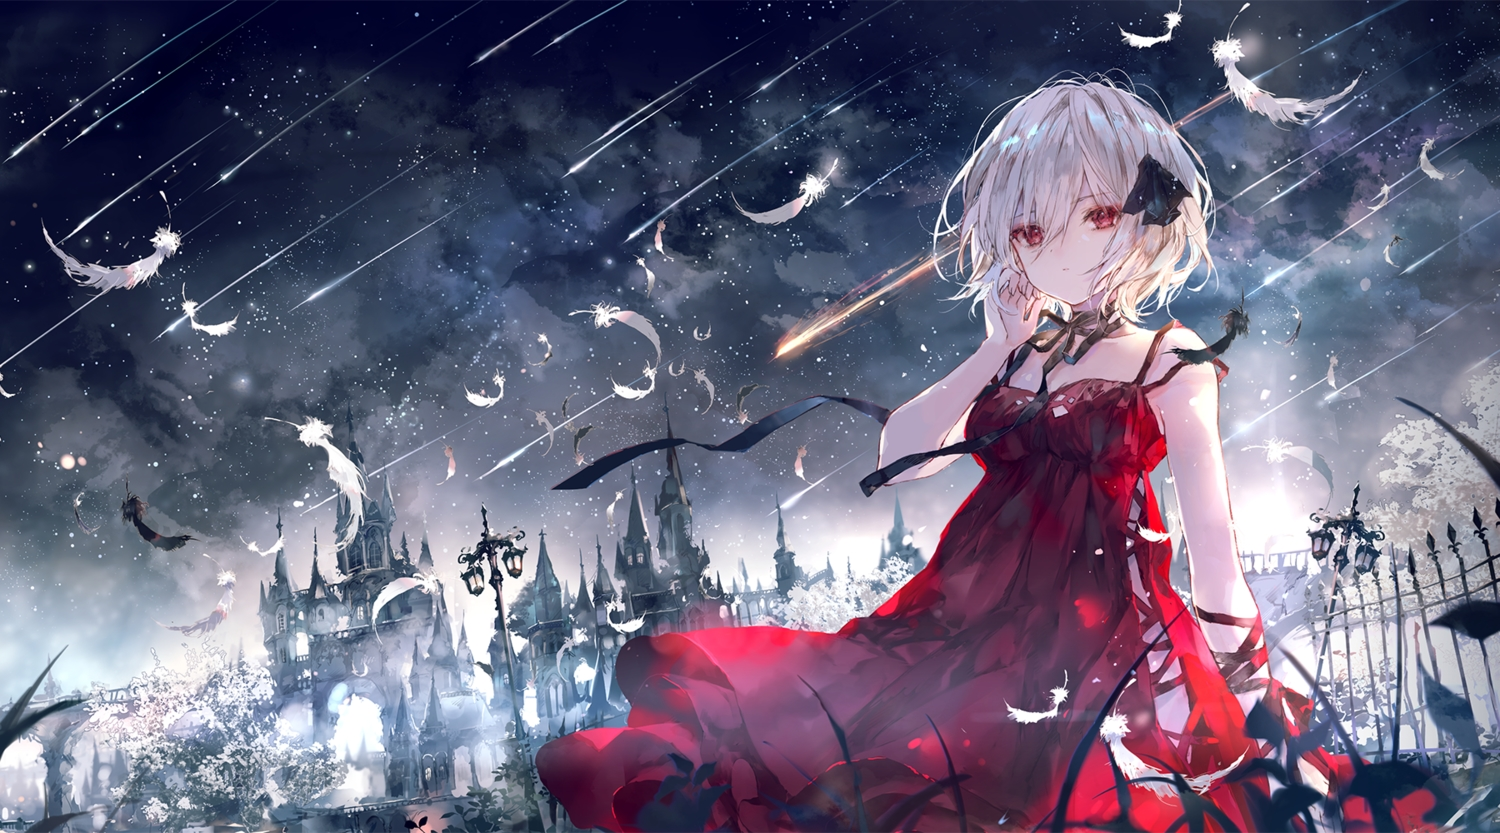 building clouds dress feathers night onineko original red_eyes ribbons sky stars white_hair